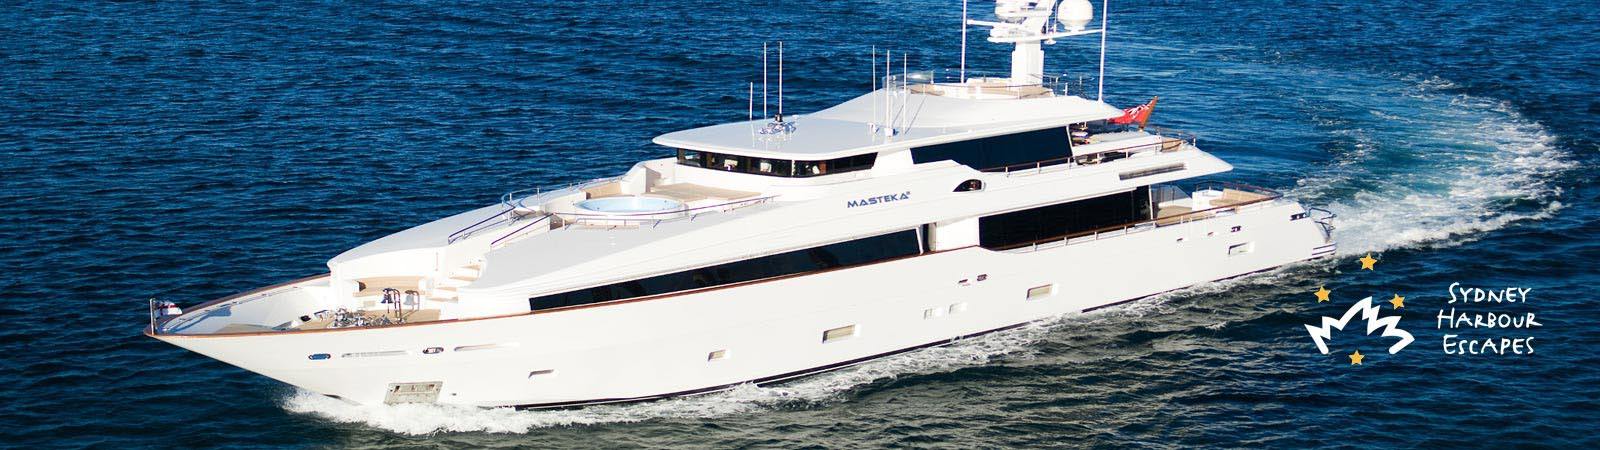 Masteka 2 boat  - Super Yacht Charter in New Years Eve